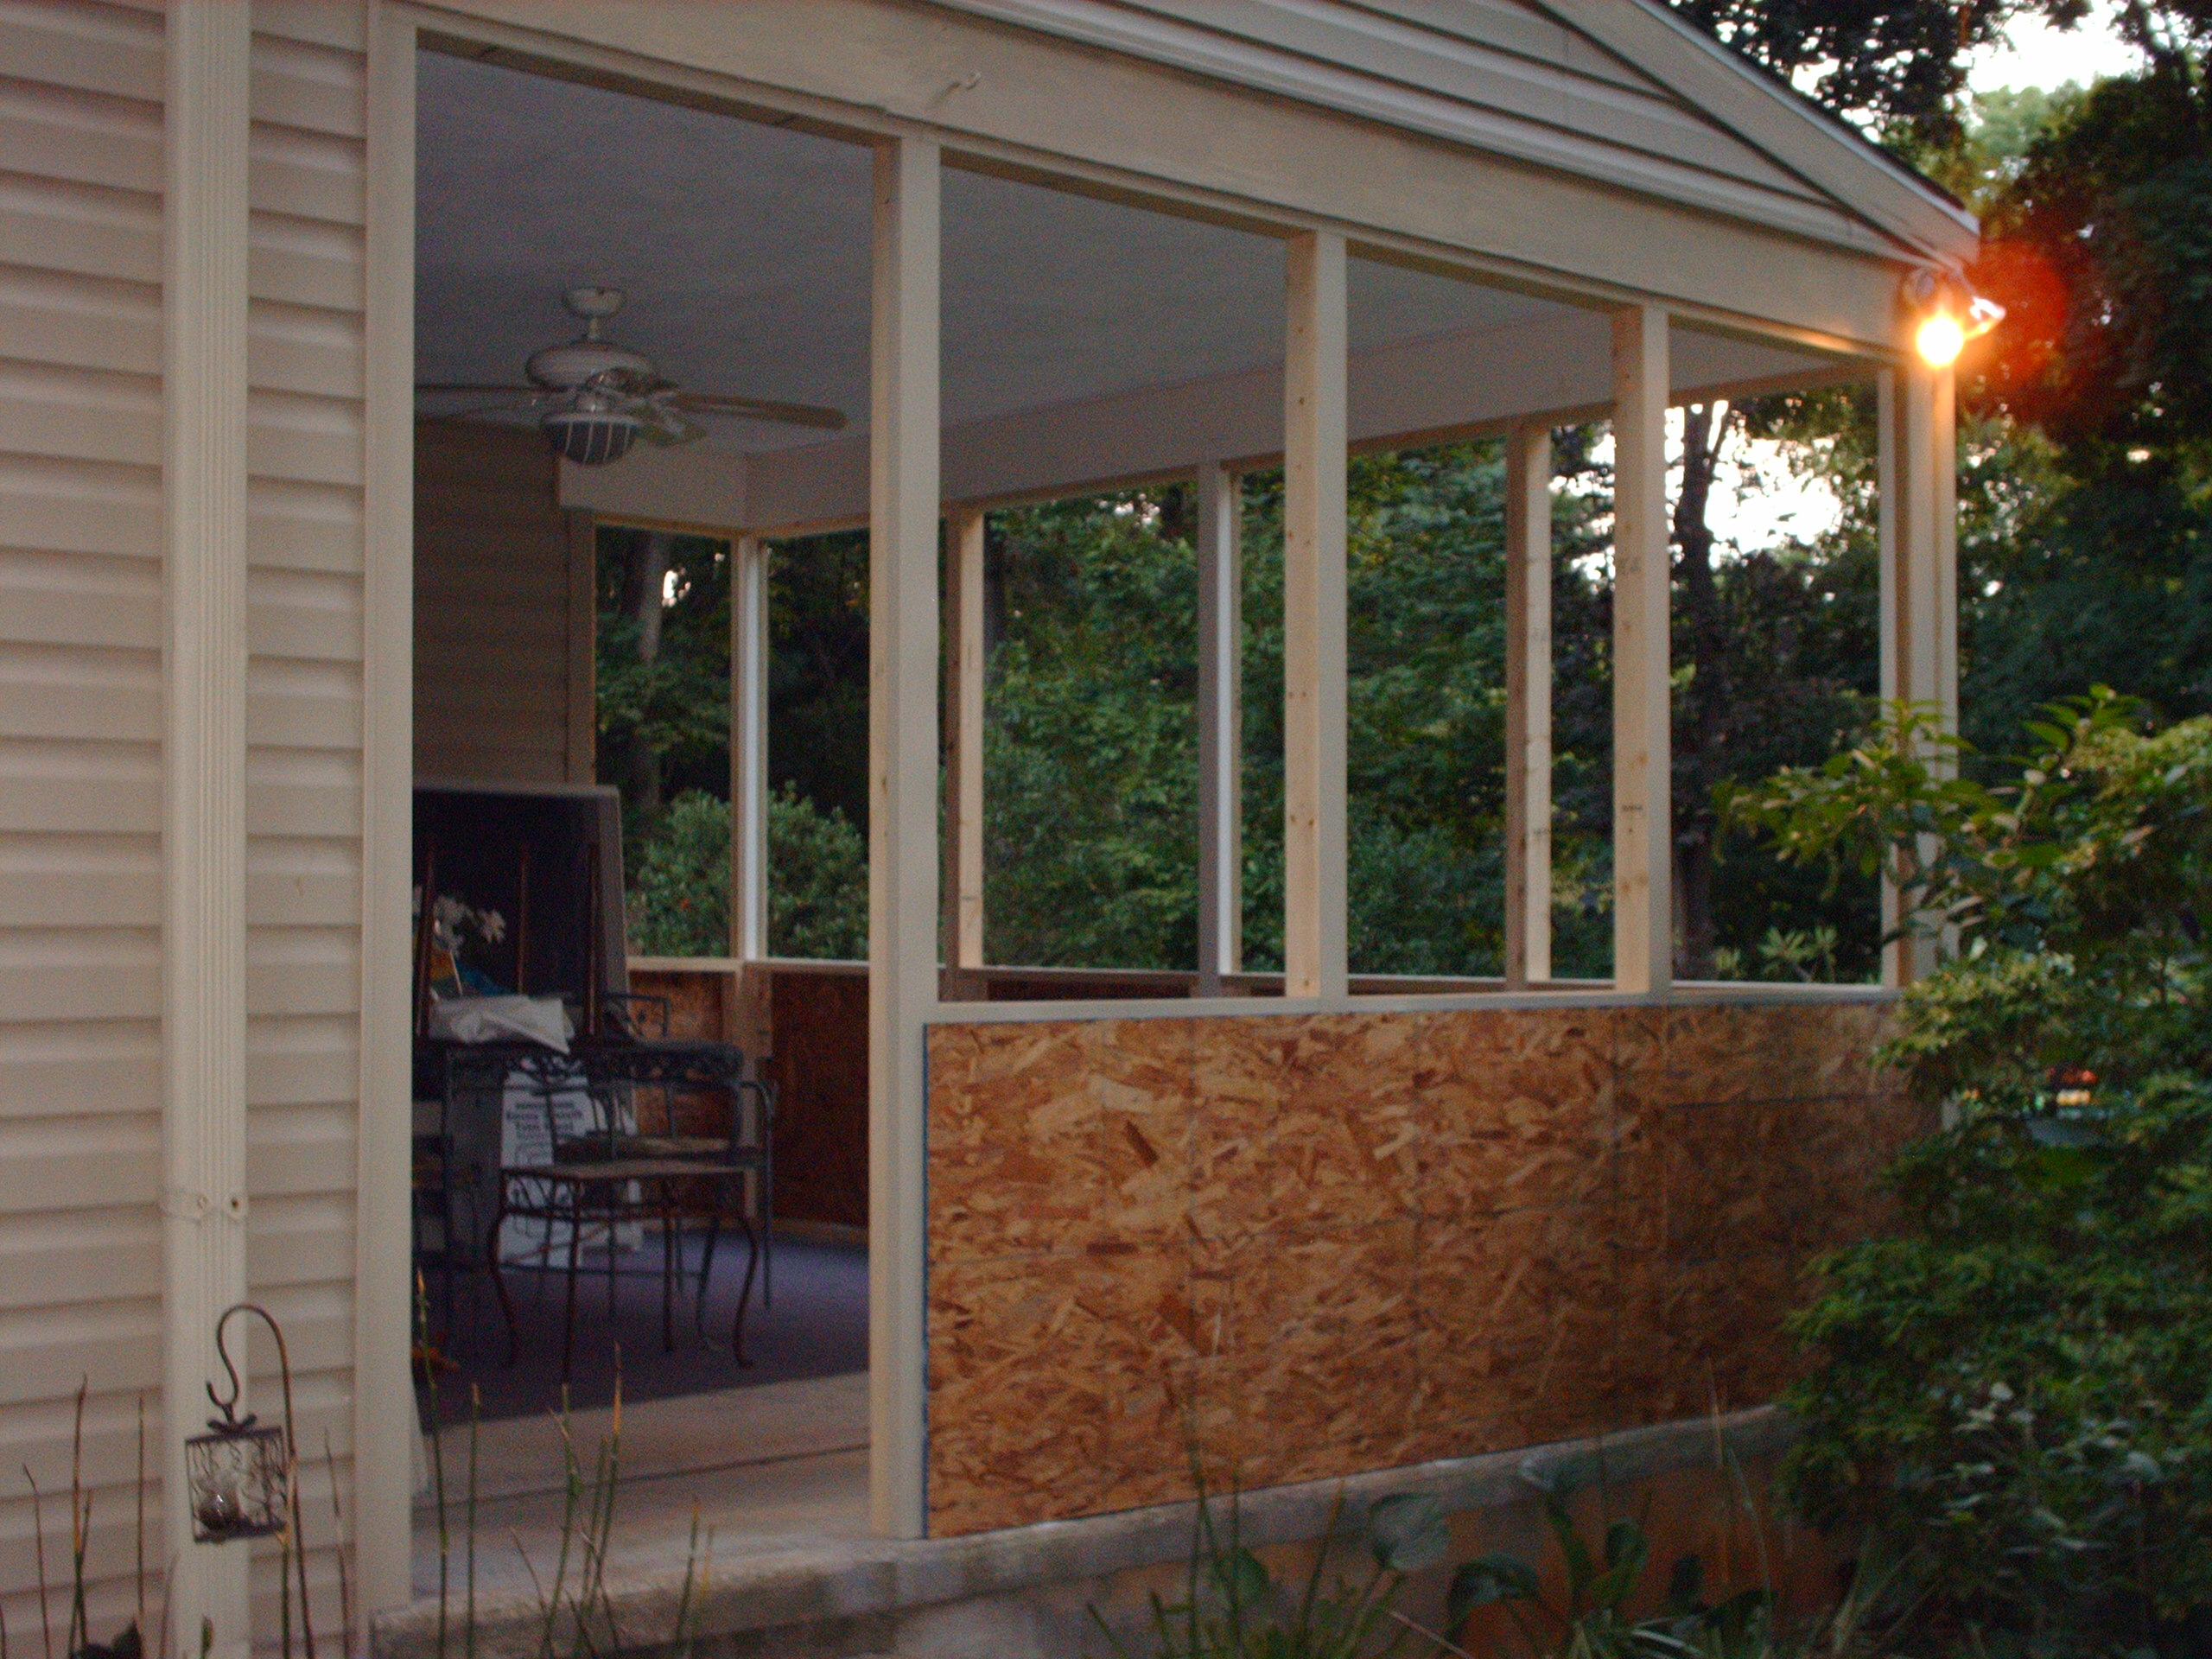 patio central exciting walls screened sliding car door porch decorations screen backyards pics only kits beautiful fa design a gallery enclosure screens garage awnings enclosures retractable sentinel